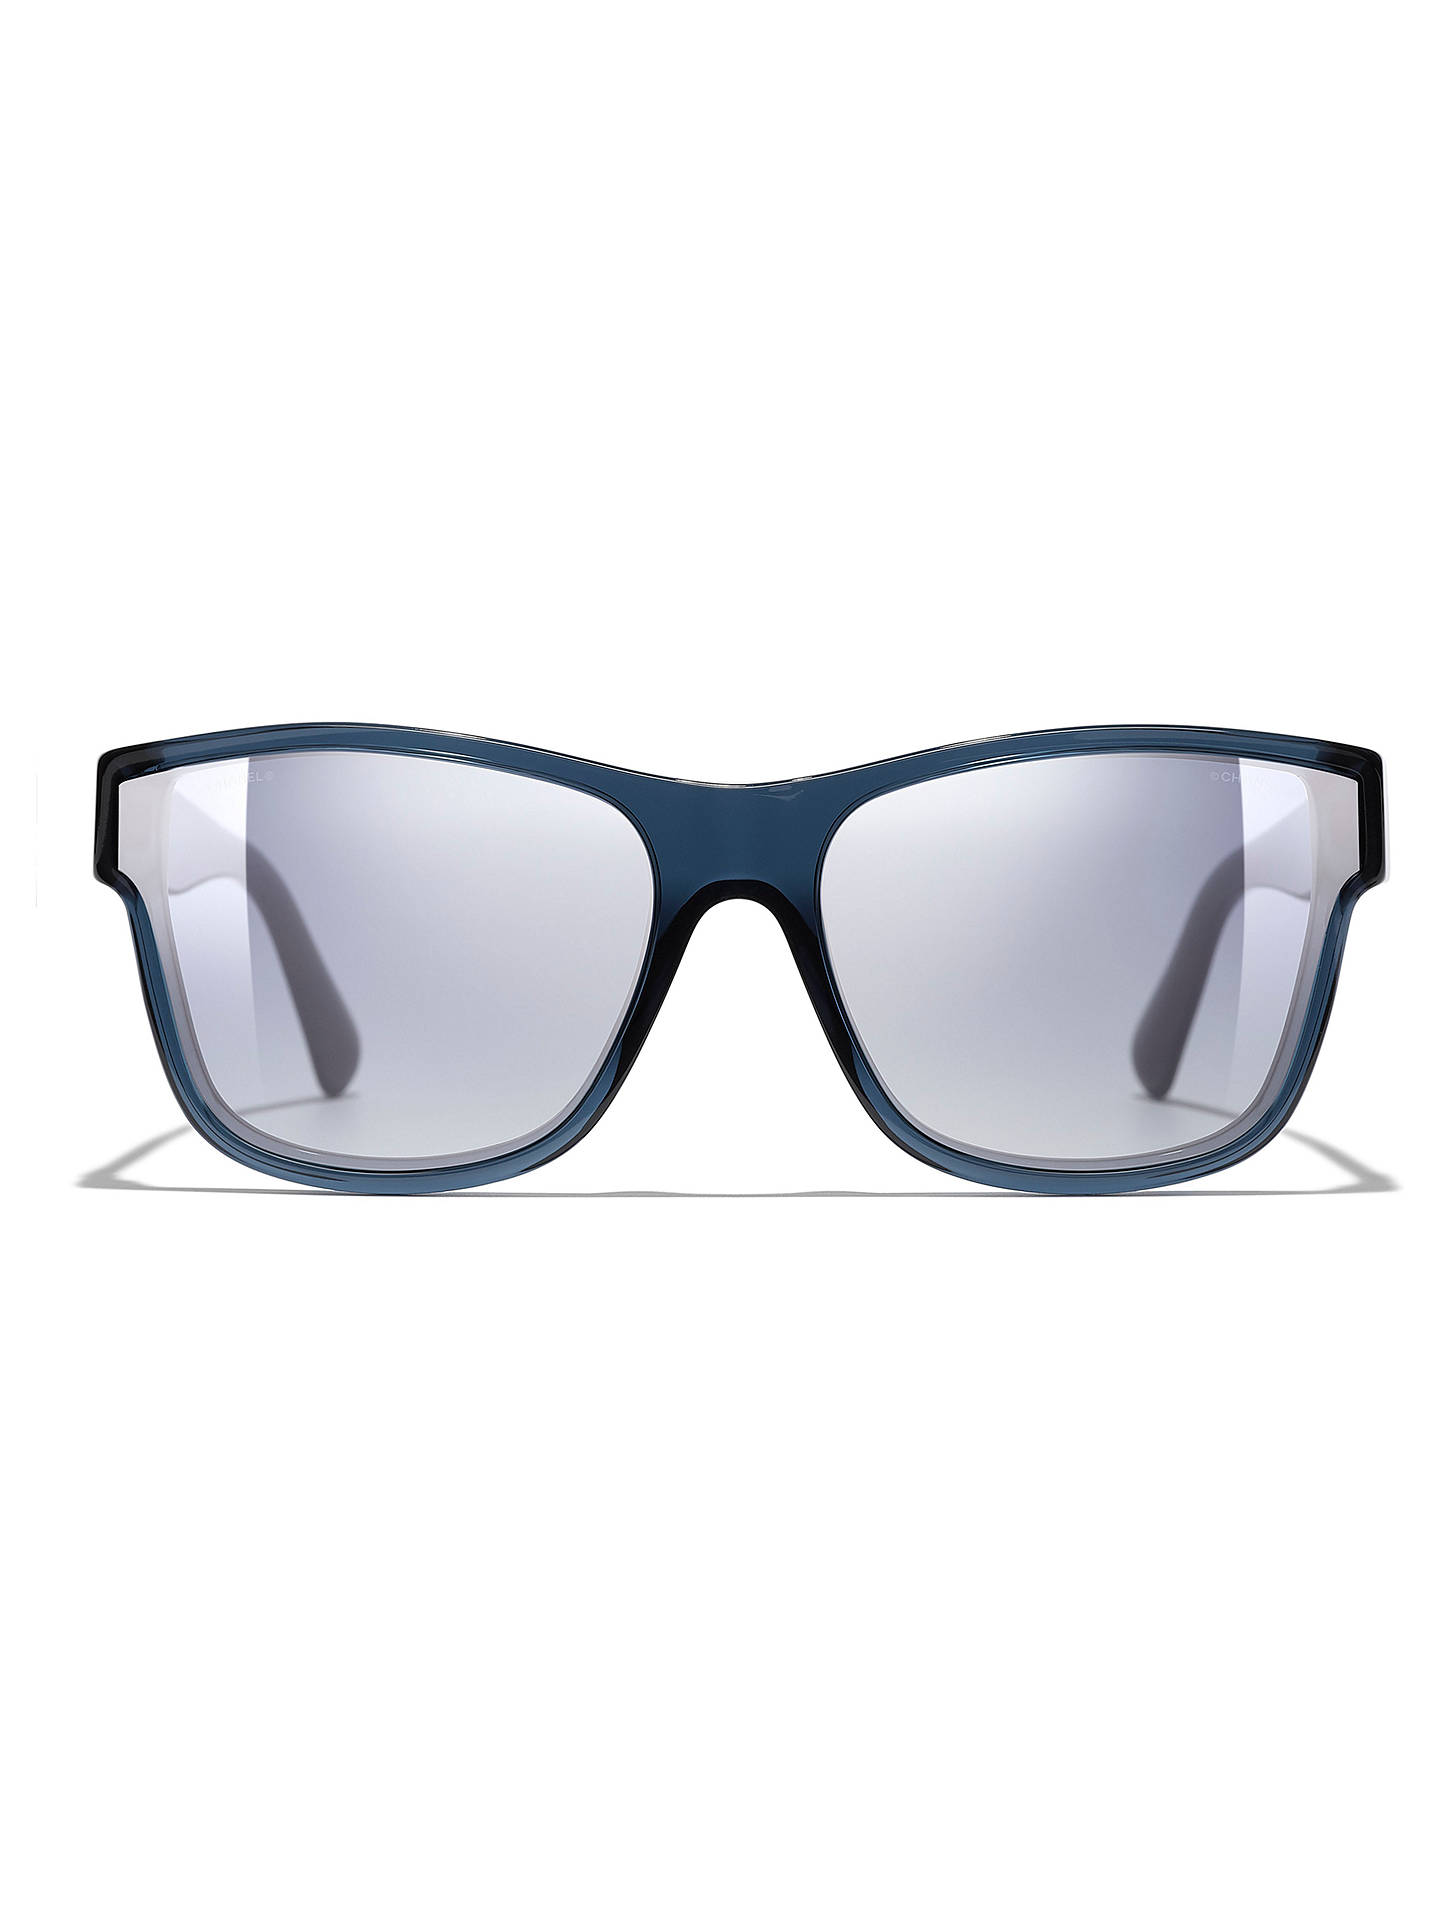 e861f844bb ... BuyCHANEL Butterfly Sunglasses CH5386 Blue Clear Blue Online at  johnlewis.com ...